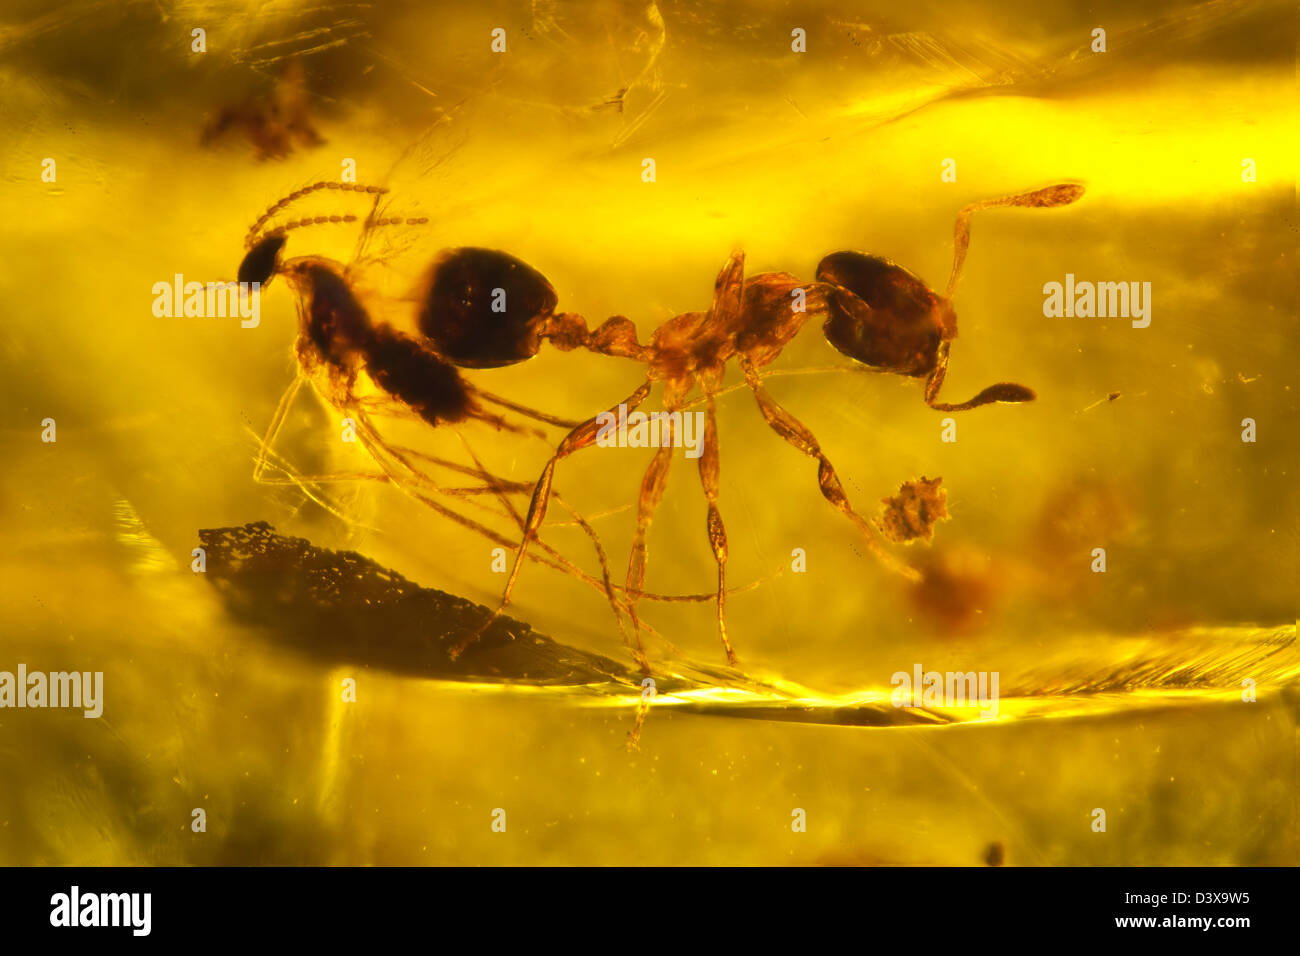 Dominican amber with insects captive, macro view of an ant and fly - Stock Image